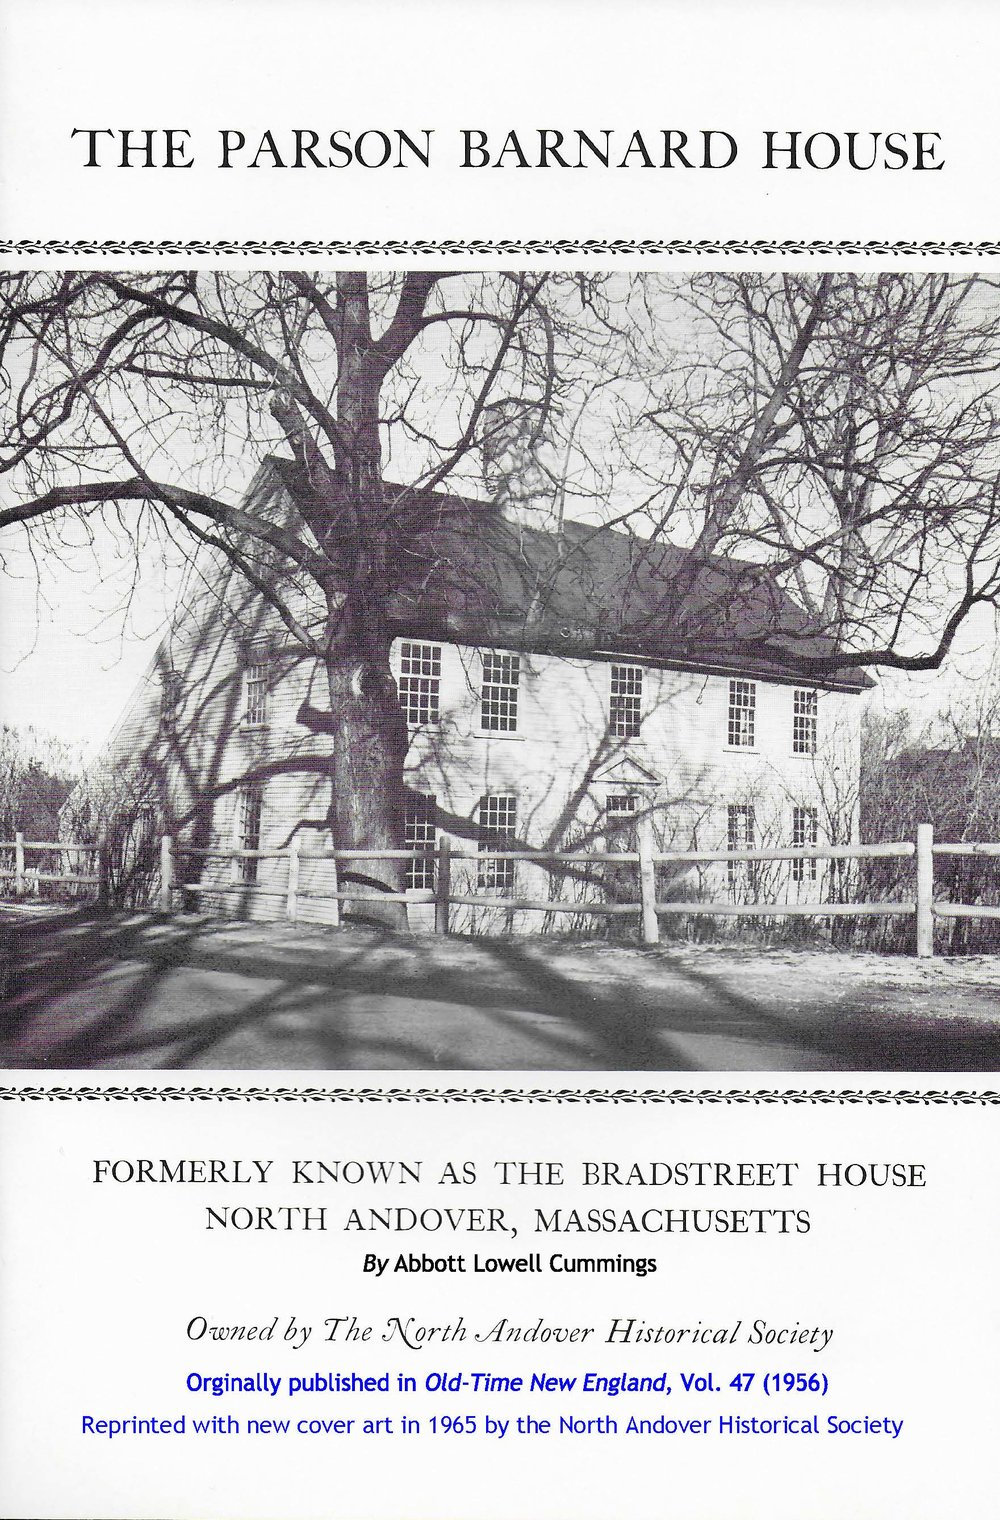 The History of the Parson Barnard House  by Abbott Lowell Cummings.